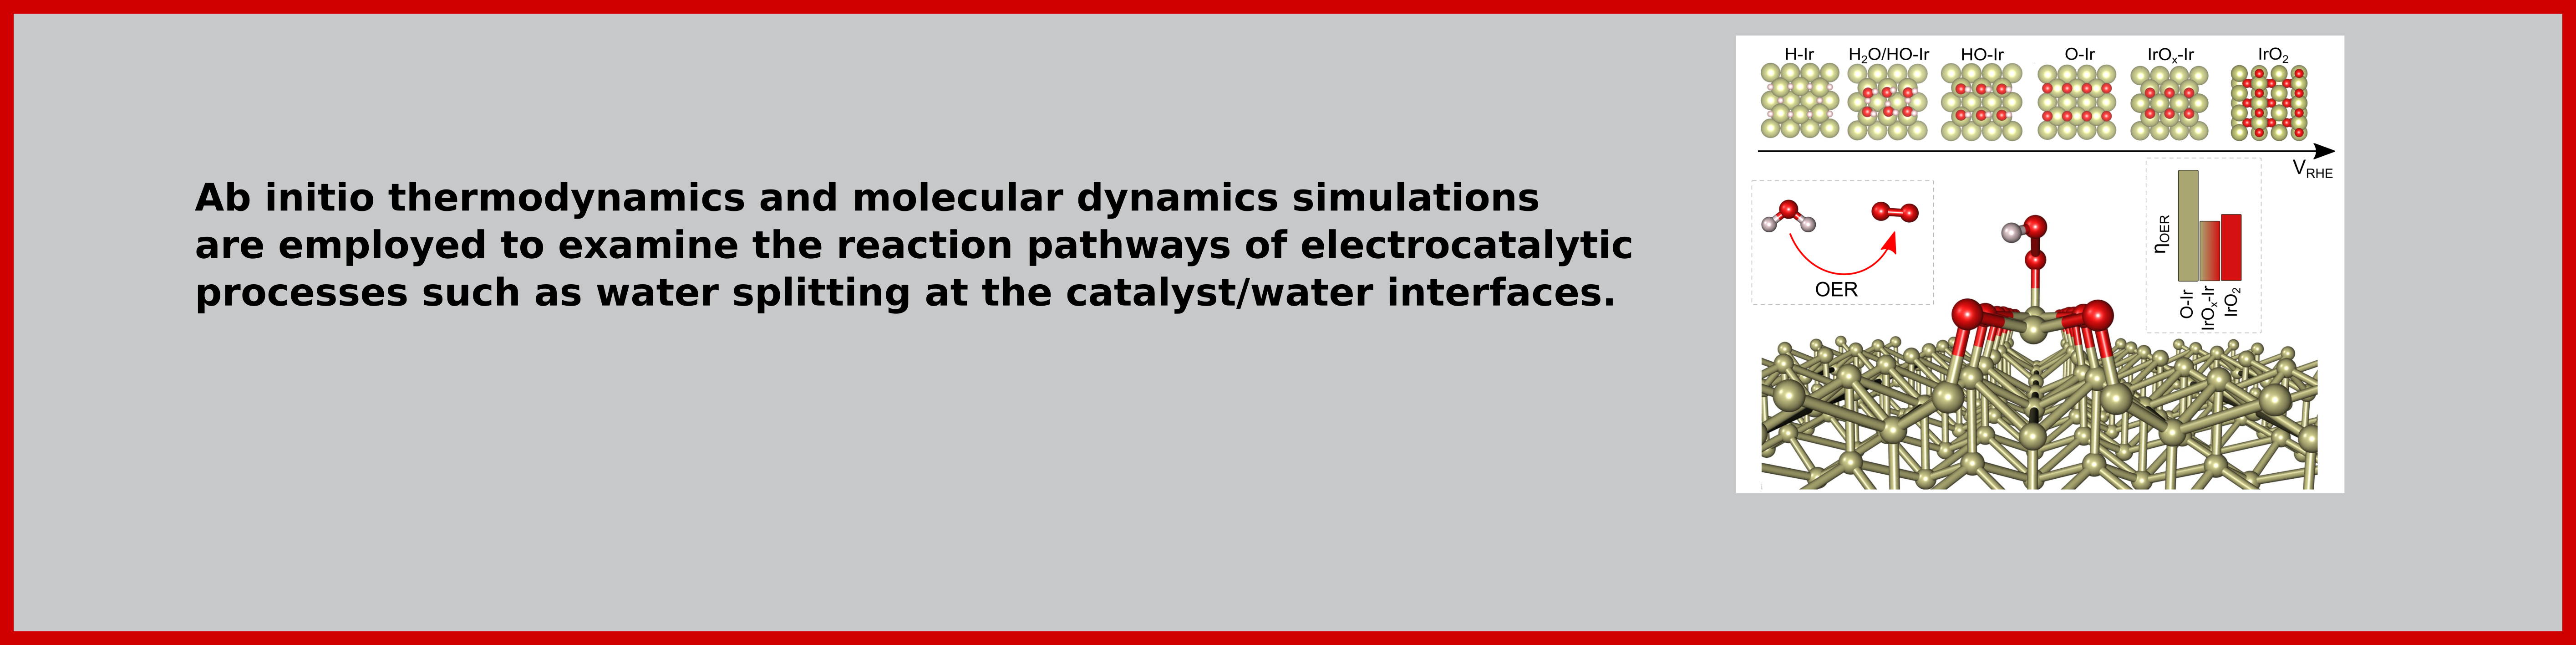 Ab initio thermodynamics and molecular dynamics for electrocatalysis.